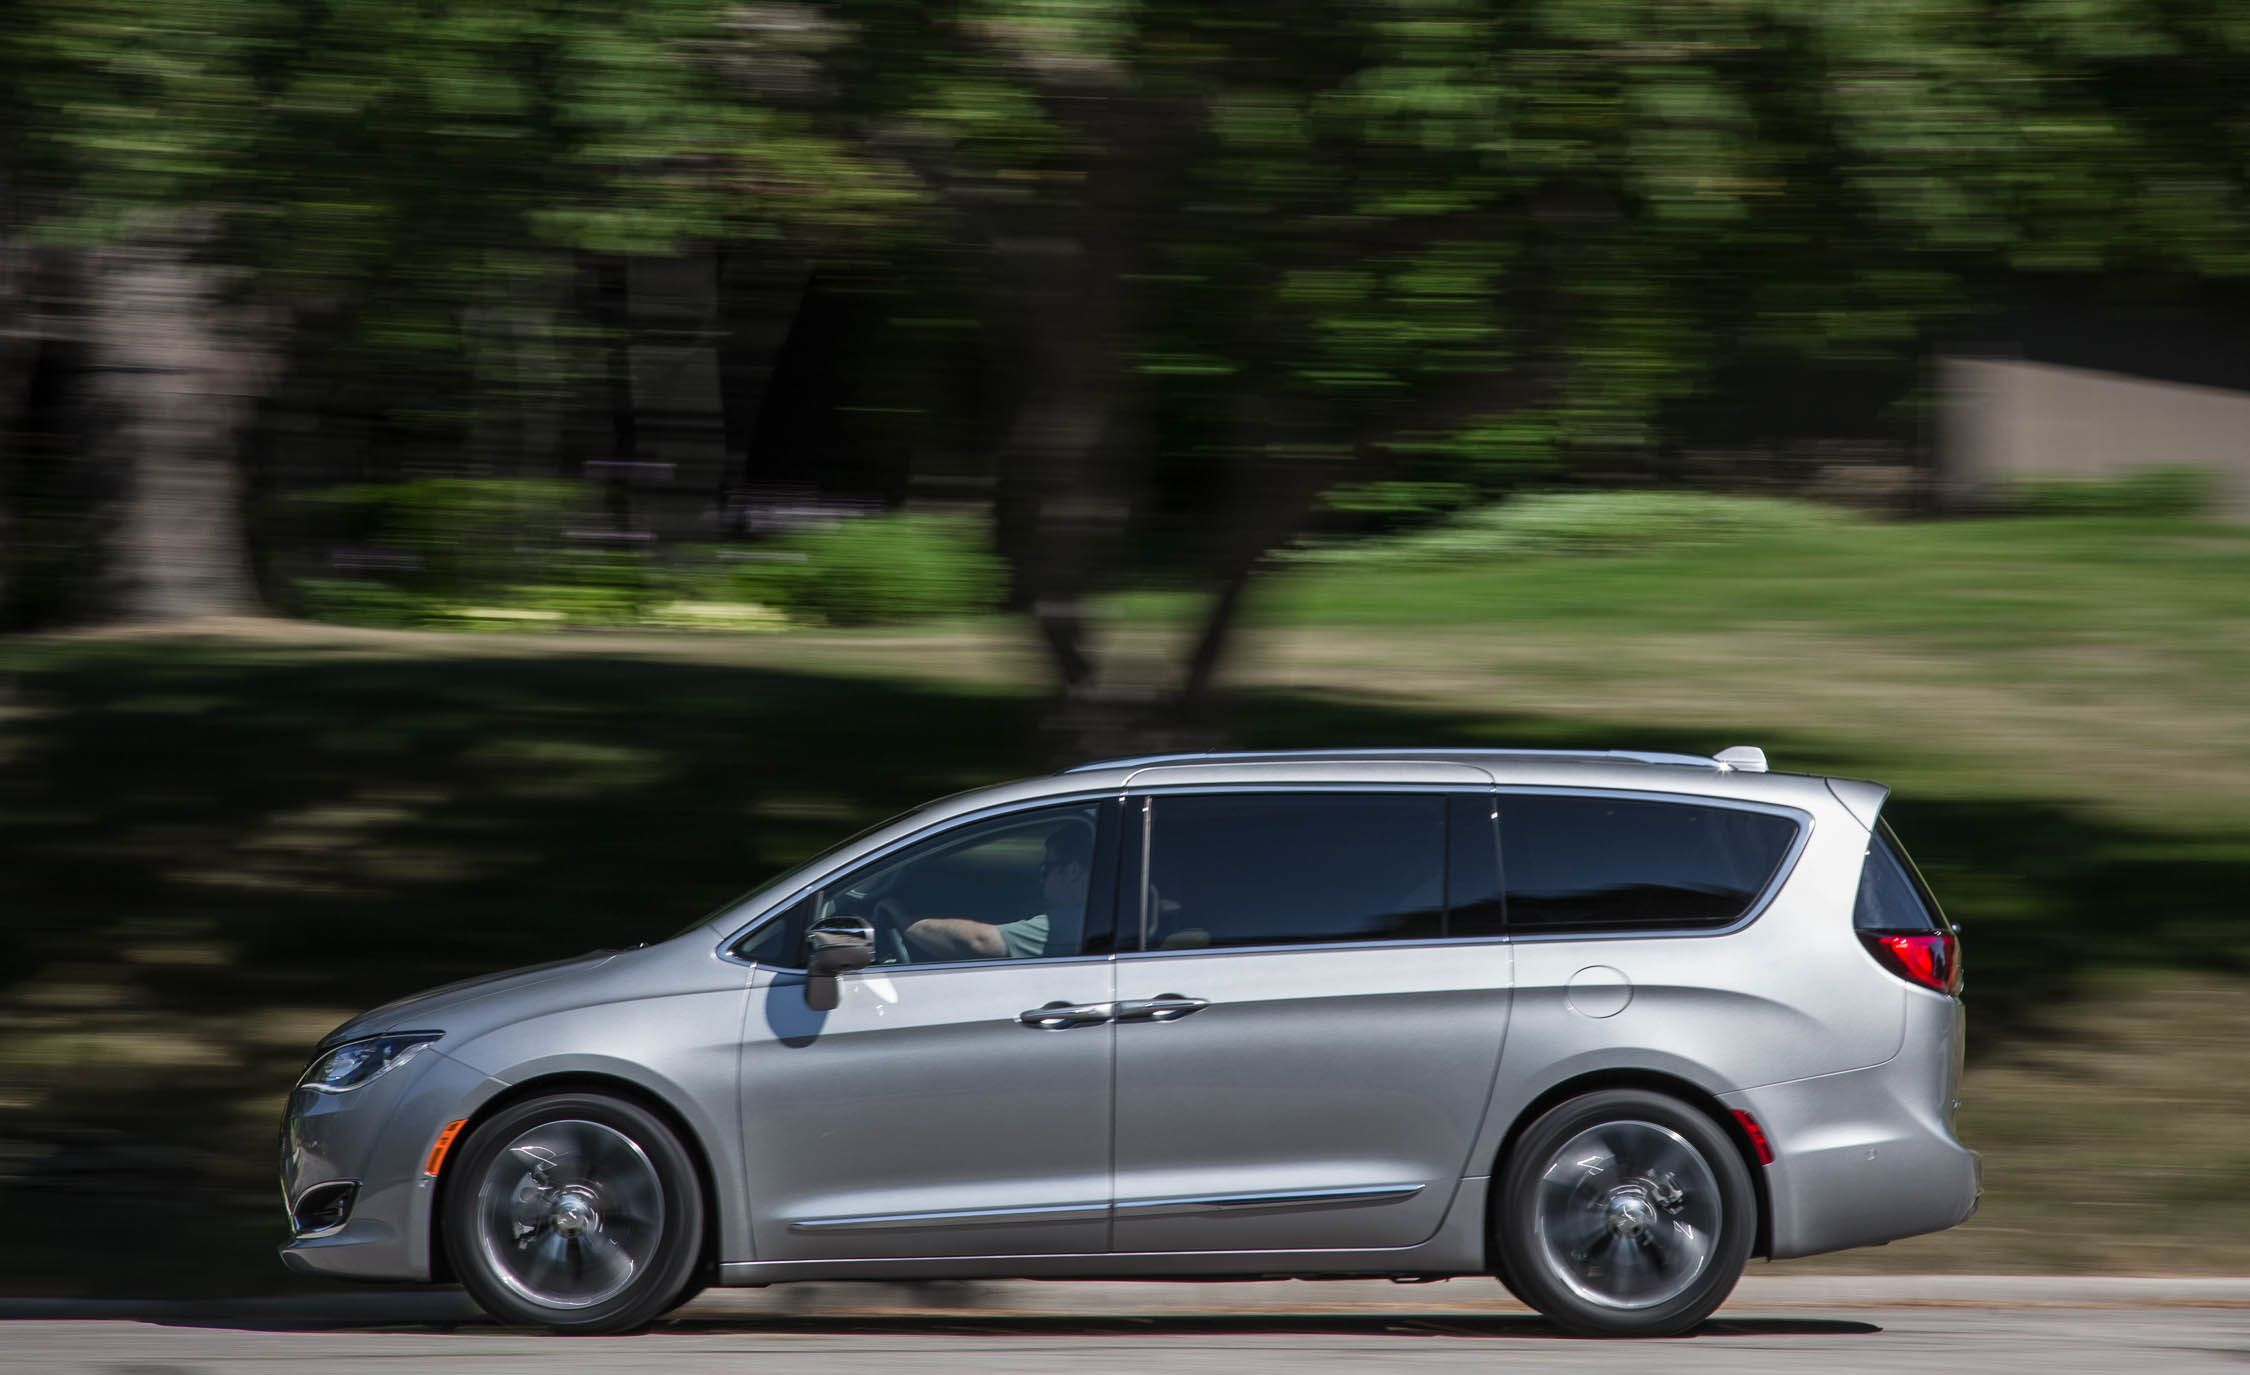 2018 Chrysler Pacifica In Depth Model Review Car And Driver 4 0 Engine Diagram